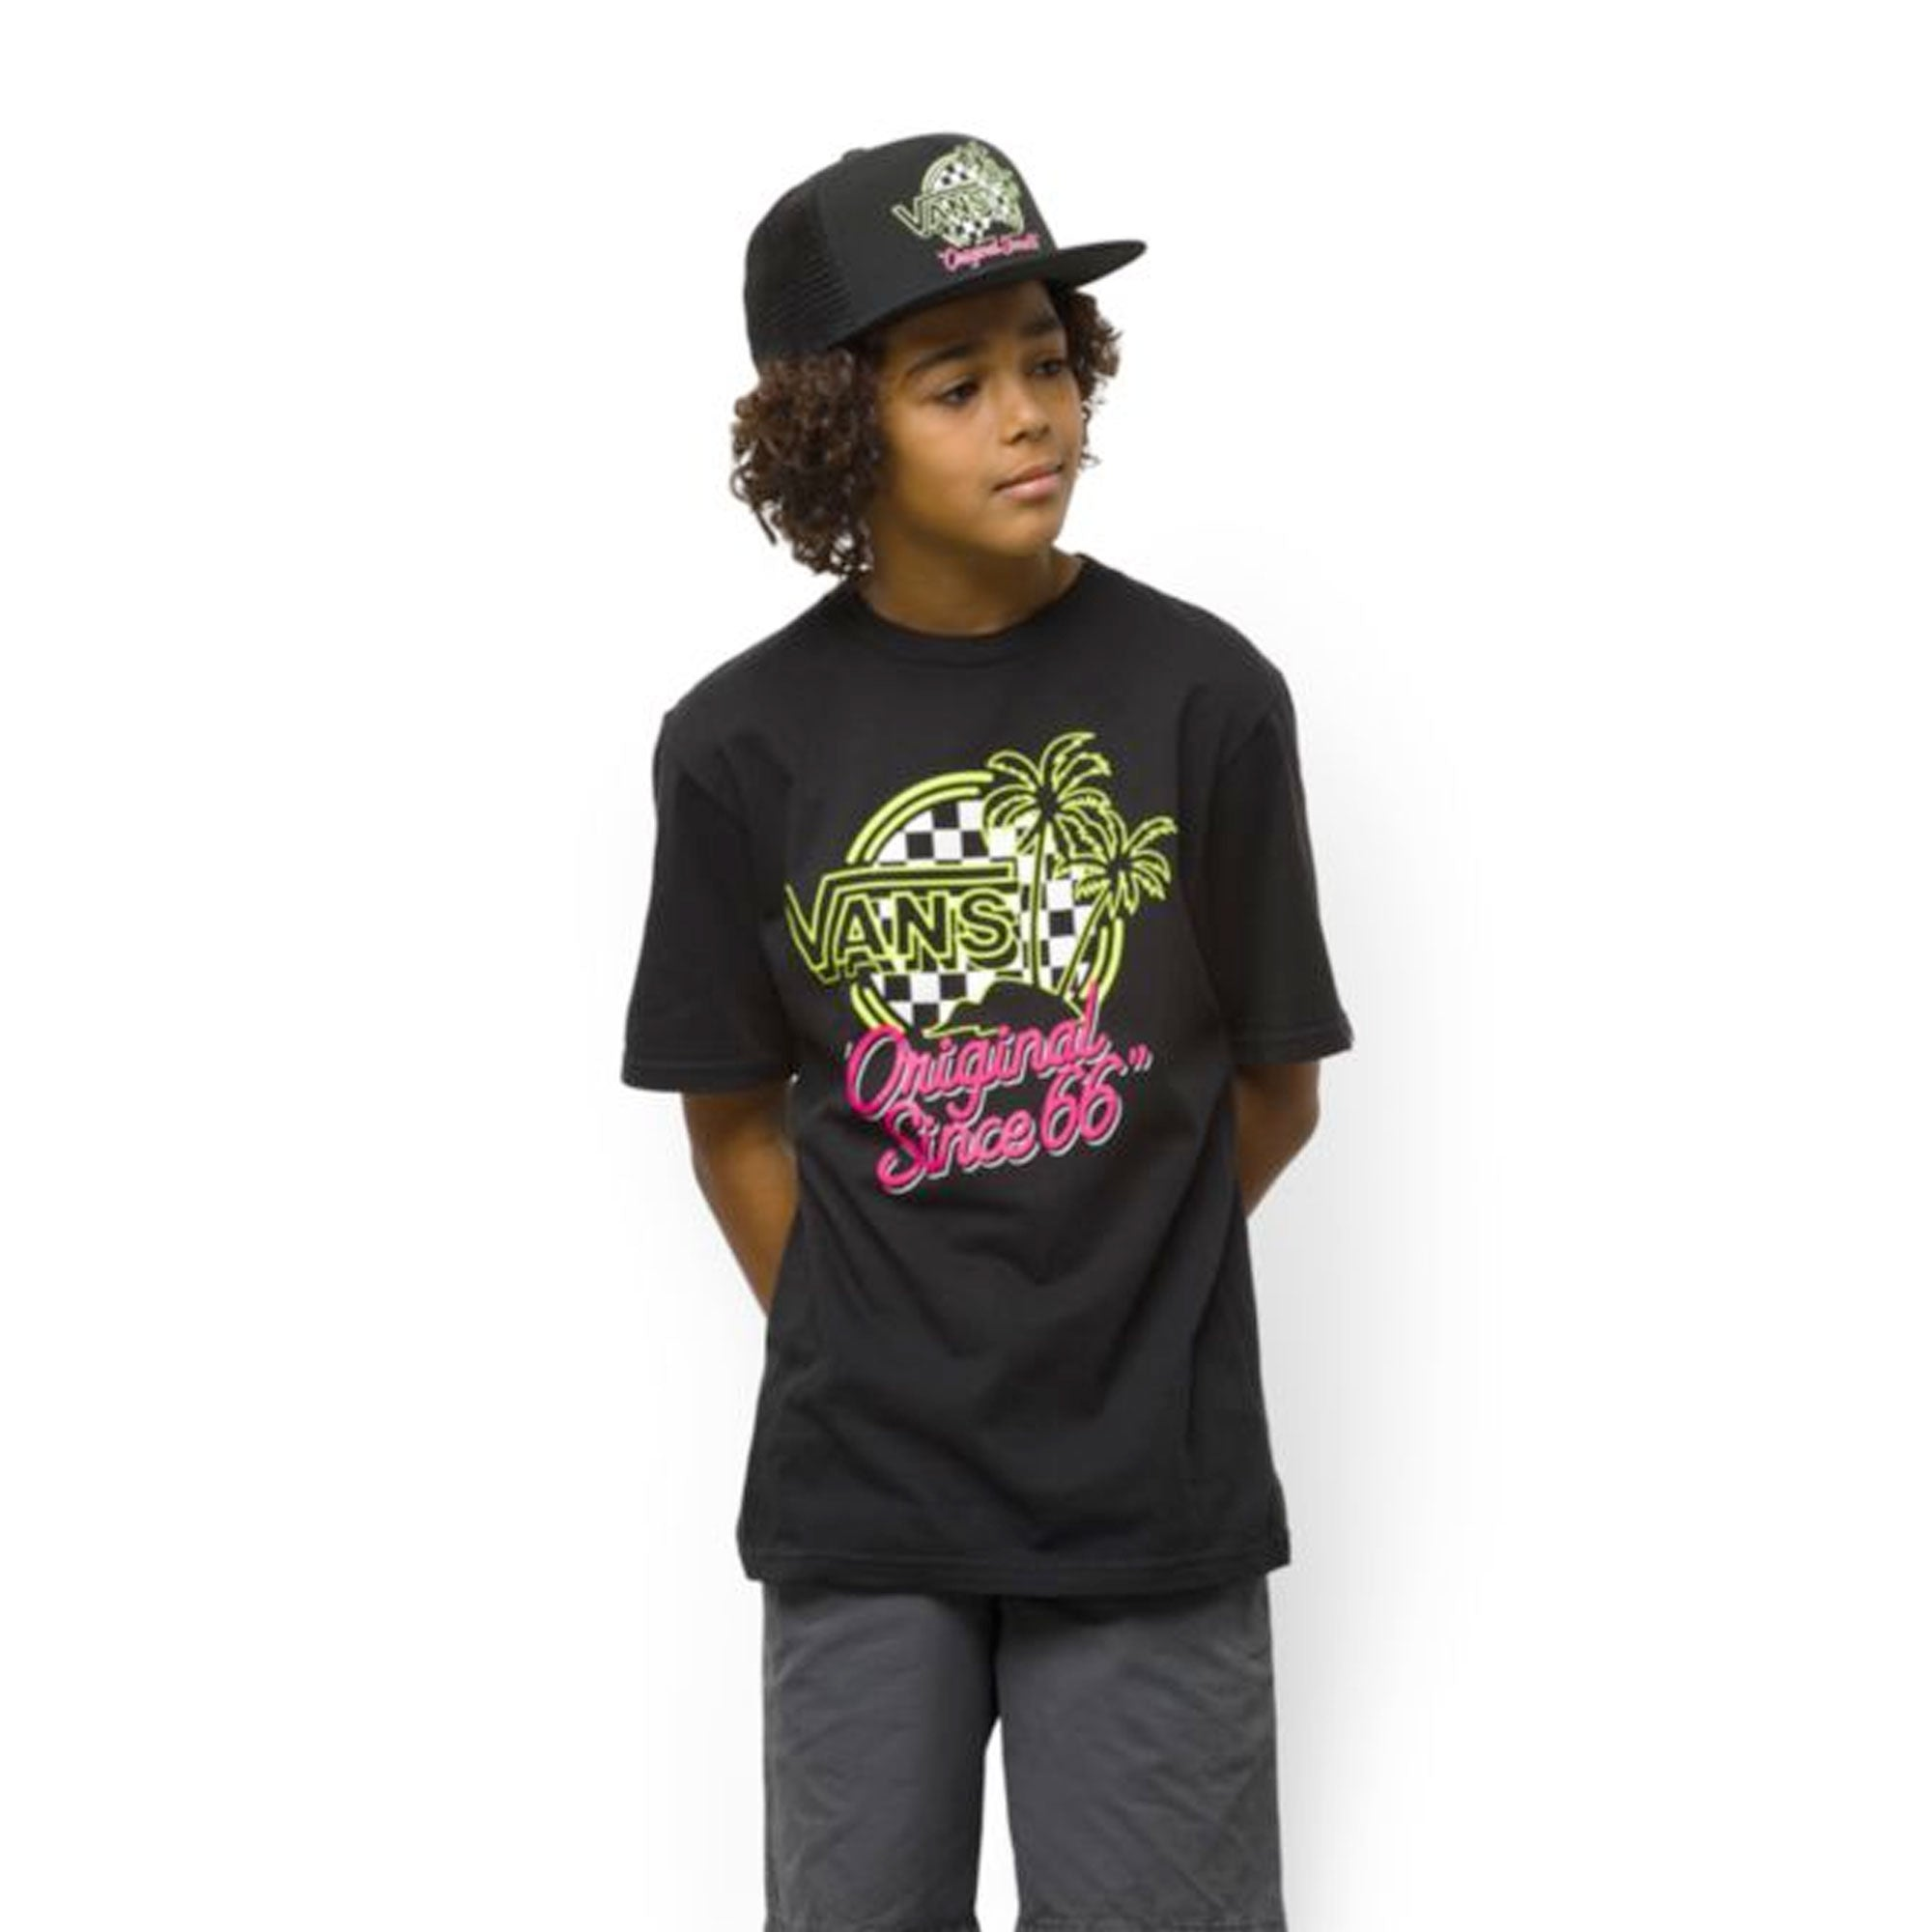 Vans Neo Palm Boys S/S T-Shirt